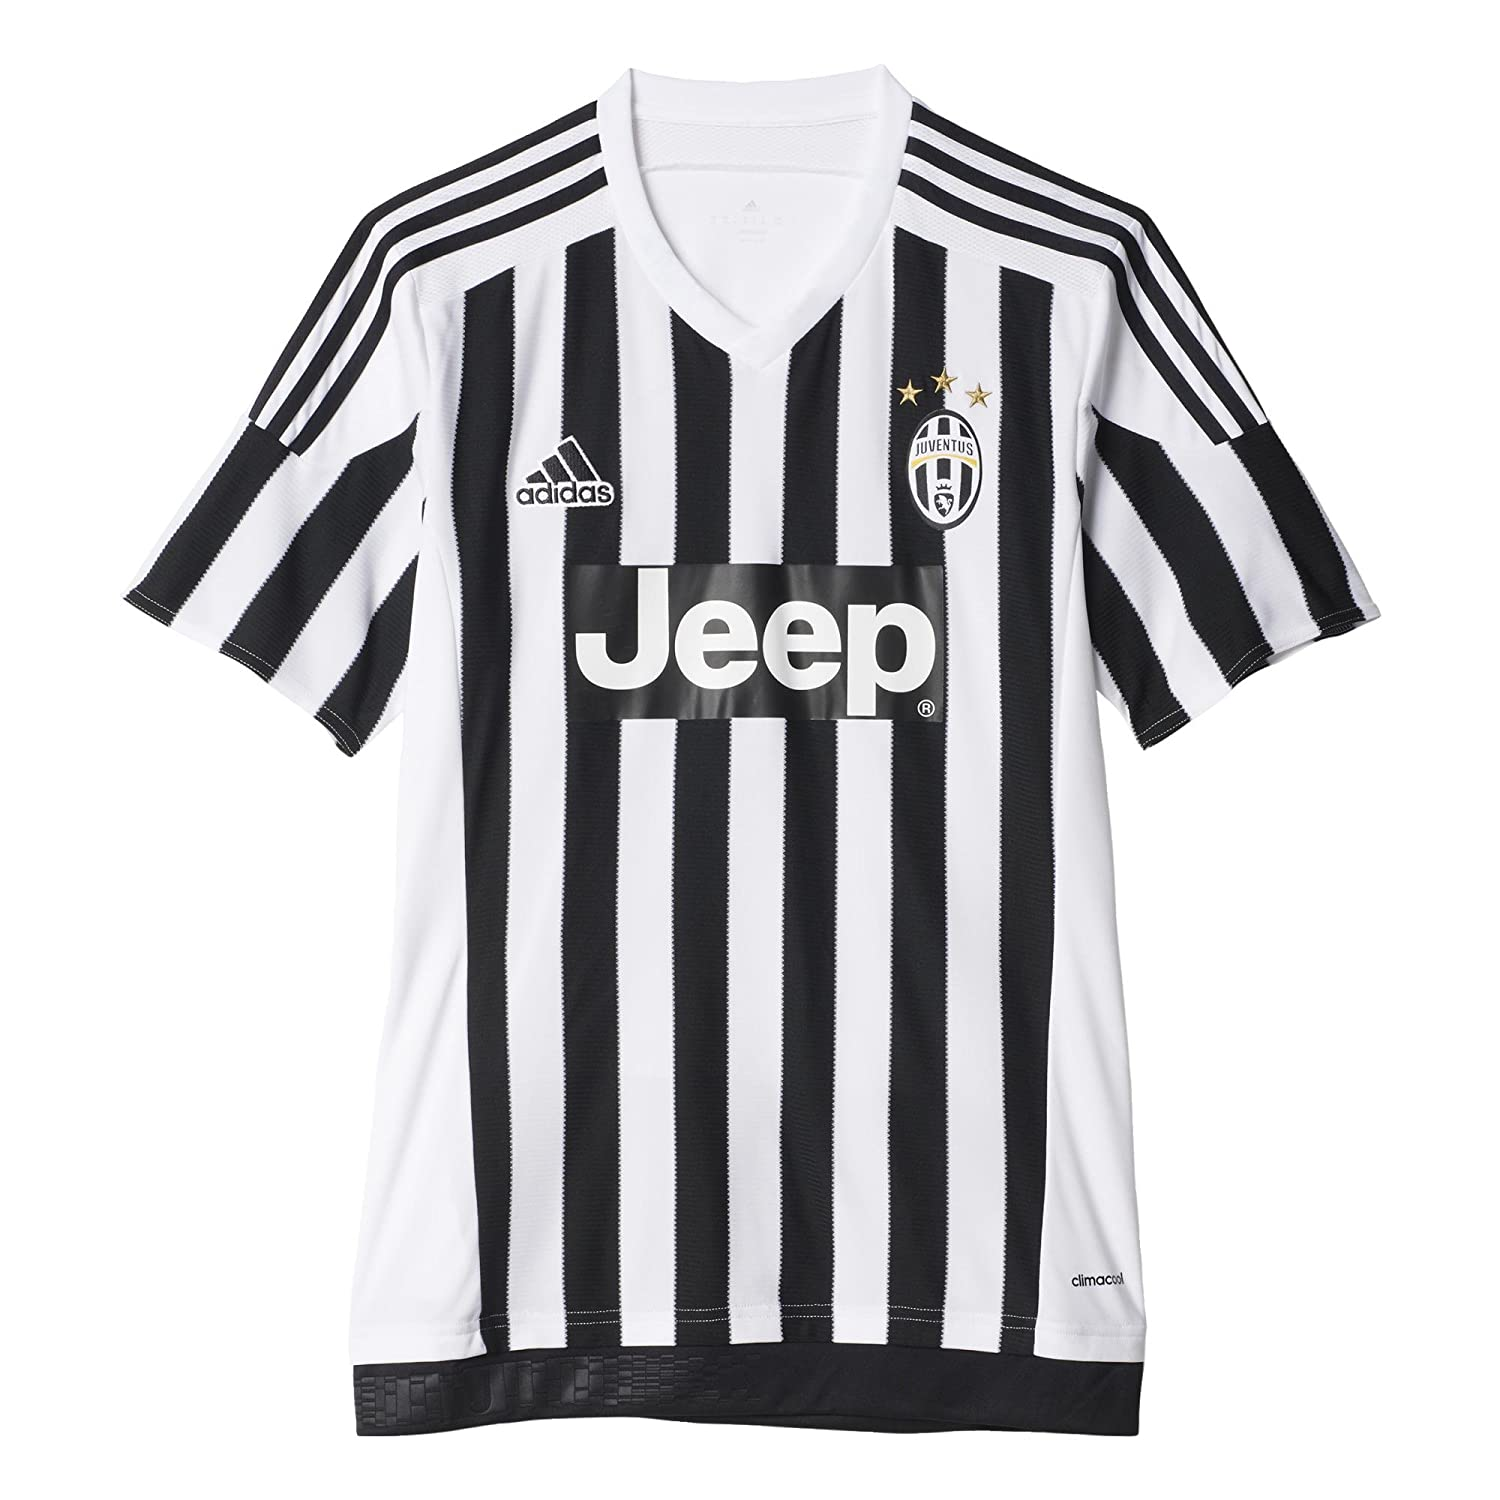 707018f0d1 Amazon.com : adidas Juventus Home Jersey-White : Clothing